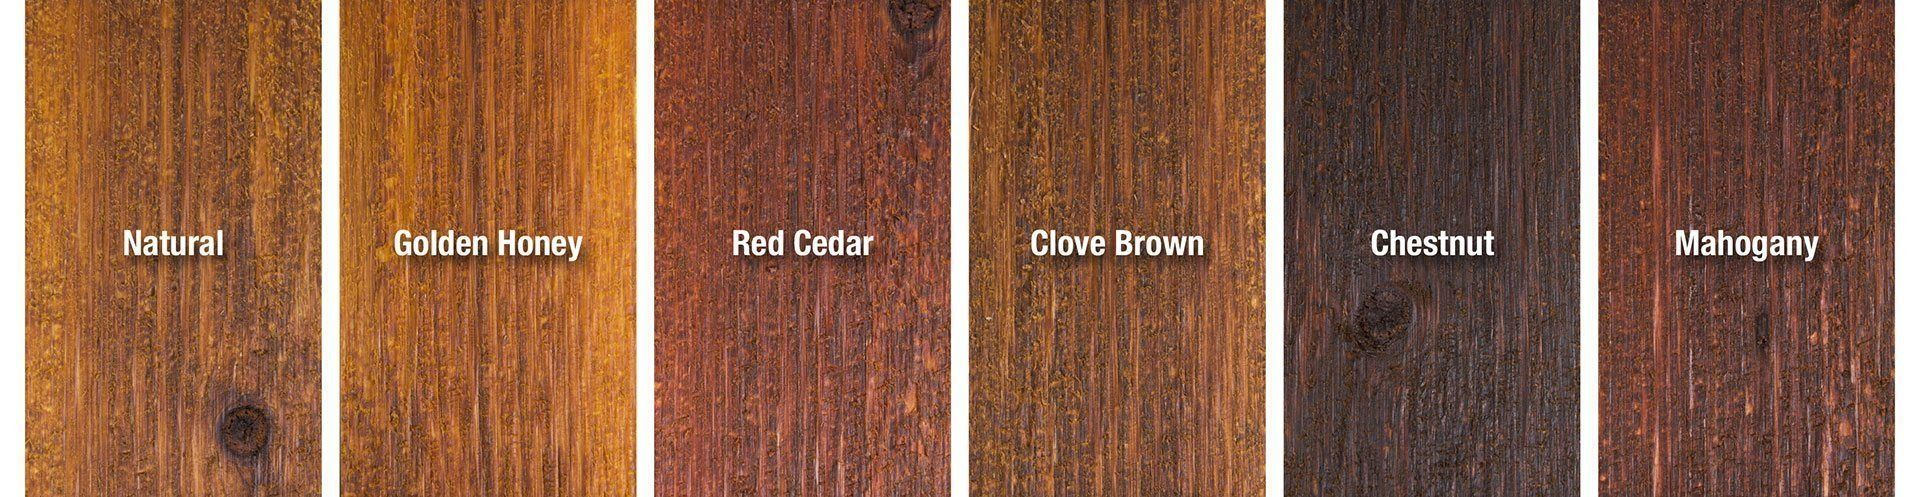 Stain Colors One Time Wood Modern Design Colors Design Modern Stain Time Wood In 2020 Stain Colors Staining Wood Wood Stain Colors